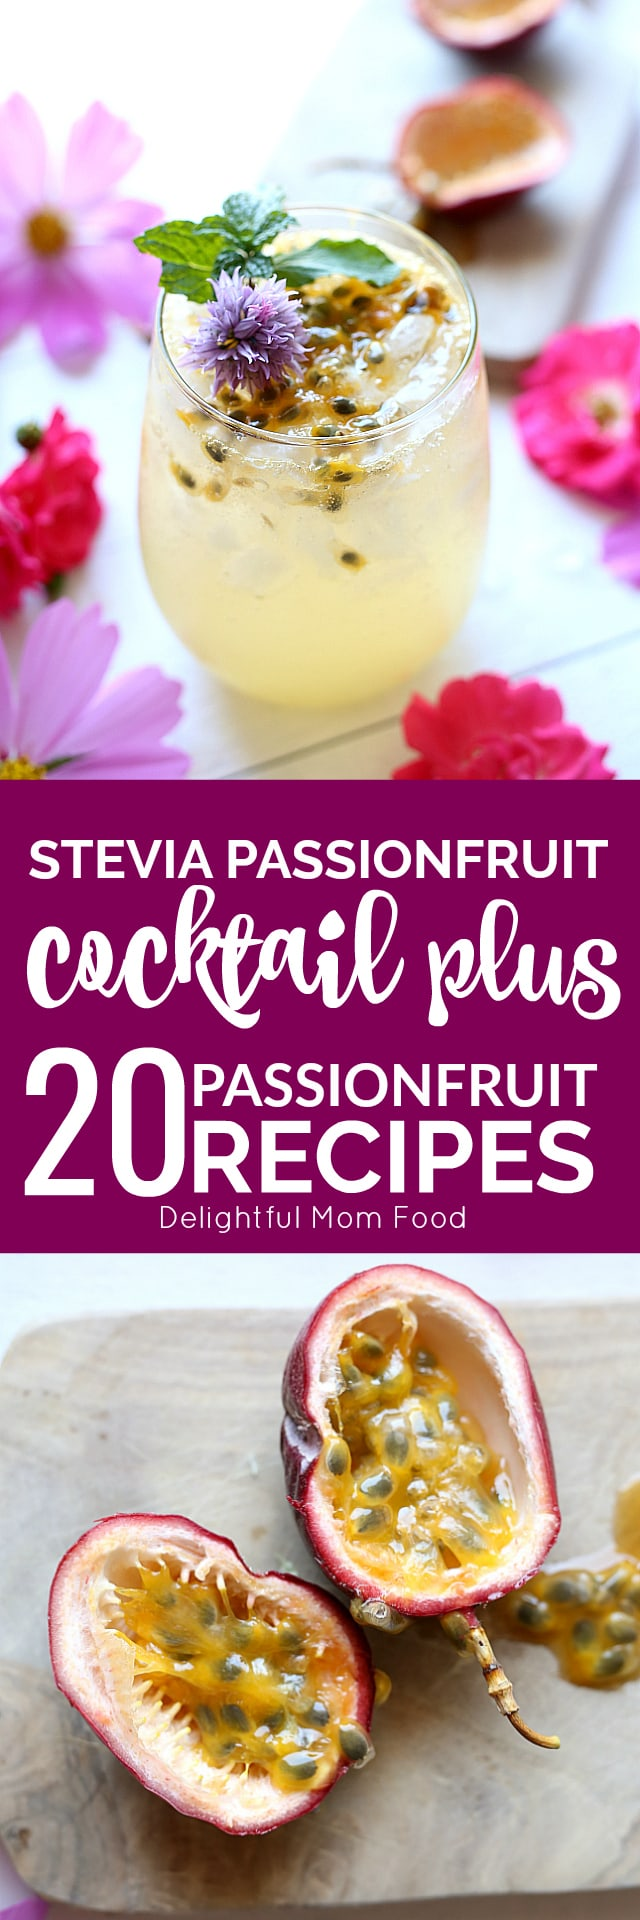 Celebrate with a lovey low-sugar passion fruit cocktail! This sparkling tropical drink is lightly sweetened with Stevia and perfect with either vodka or tequila (or skip the booze all together)!